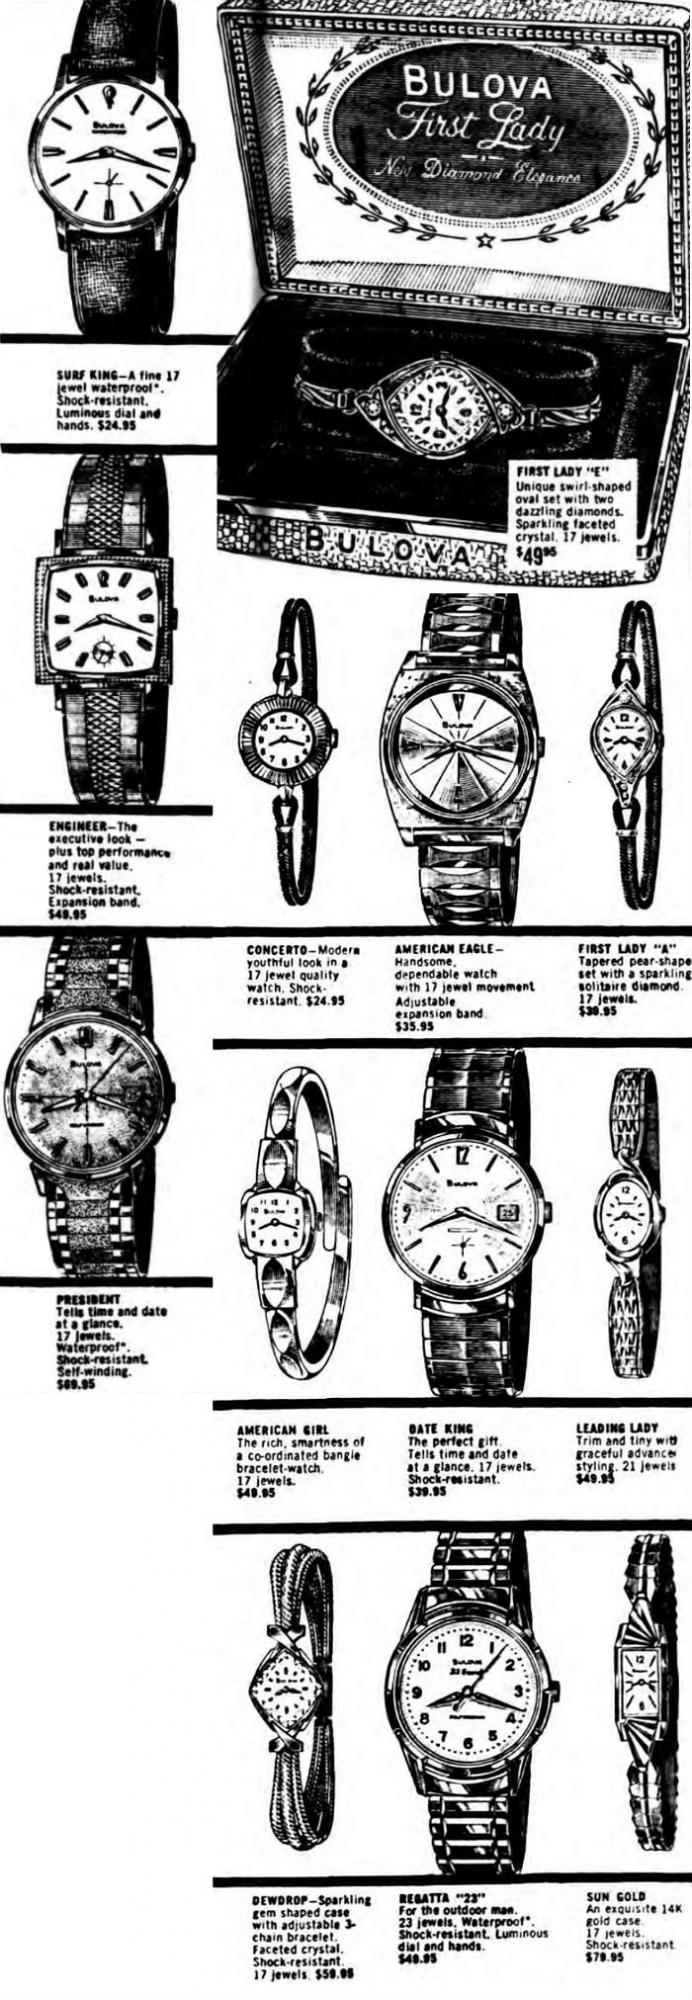 1964 Bulova watch advert, Surf King, Engineer, President, First Lady, Concerto, American Eagle,  Leading Lady, Date King, American Girl, Drewdrop, Regatta 23, Sun Gold